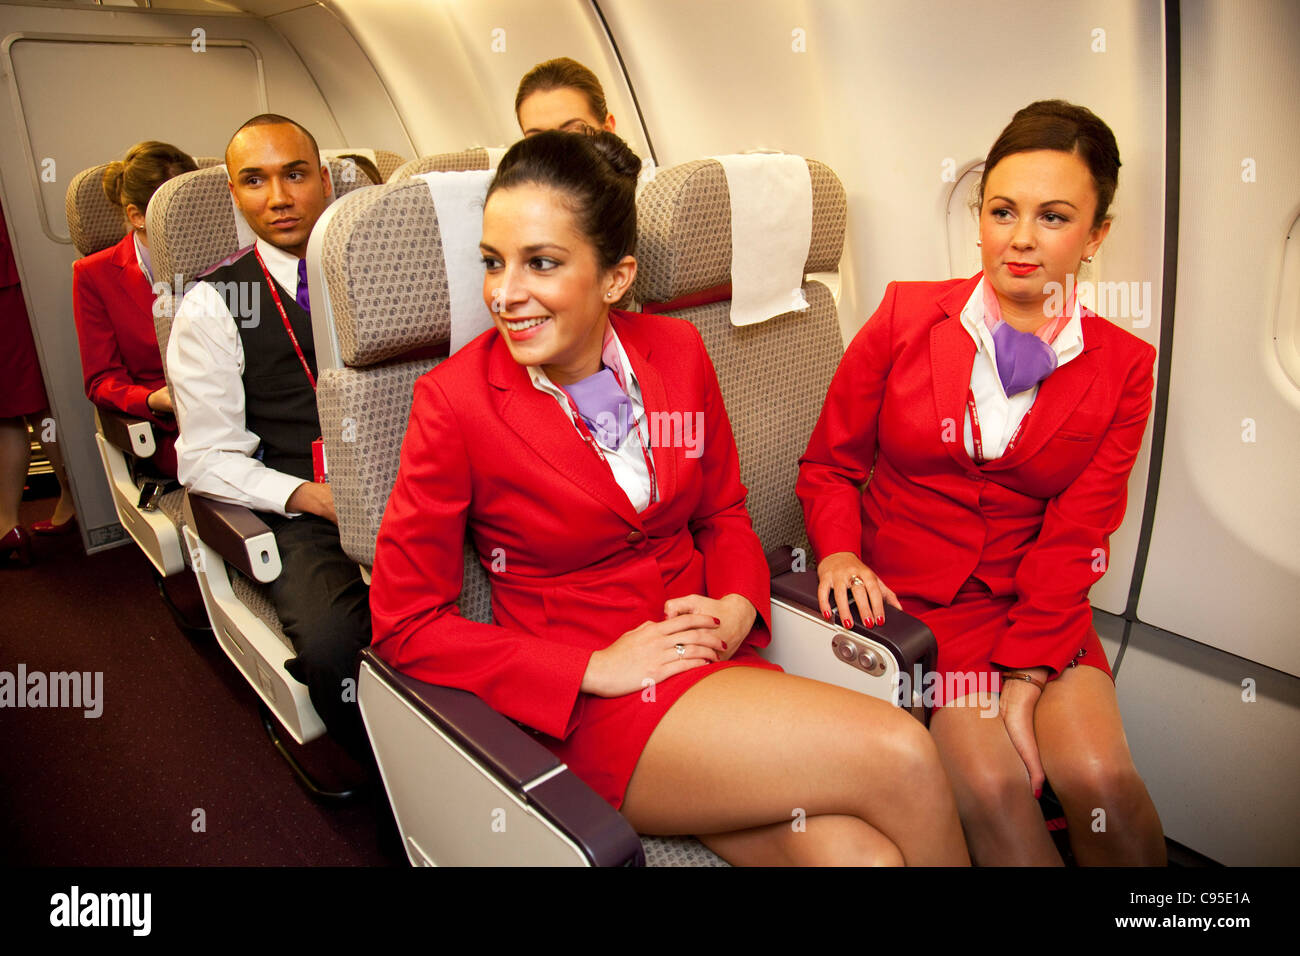 Airline hostess